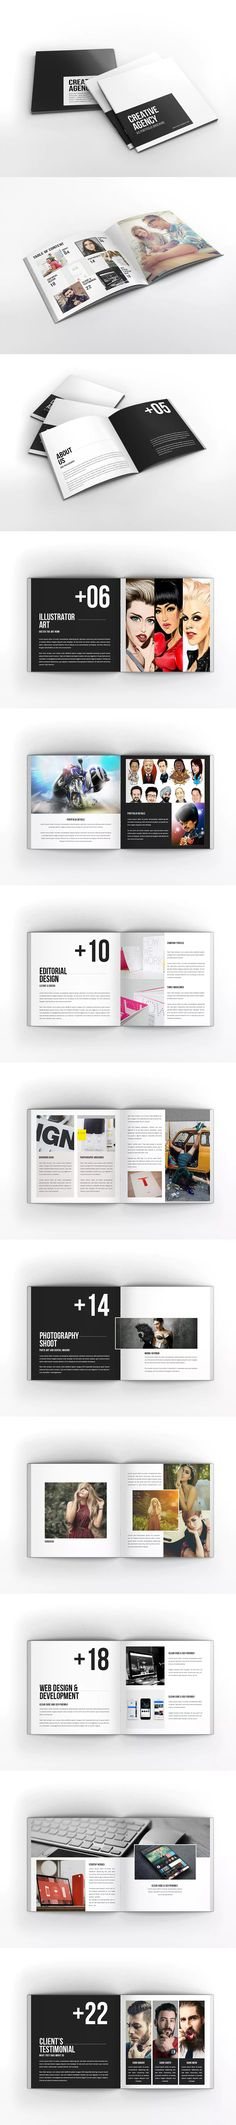 Product Catalog Template u2013 US Letter Landscape Design Haven - pull tab flyer template